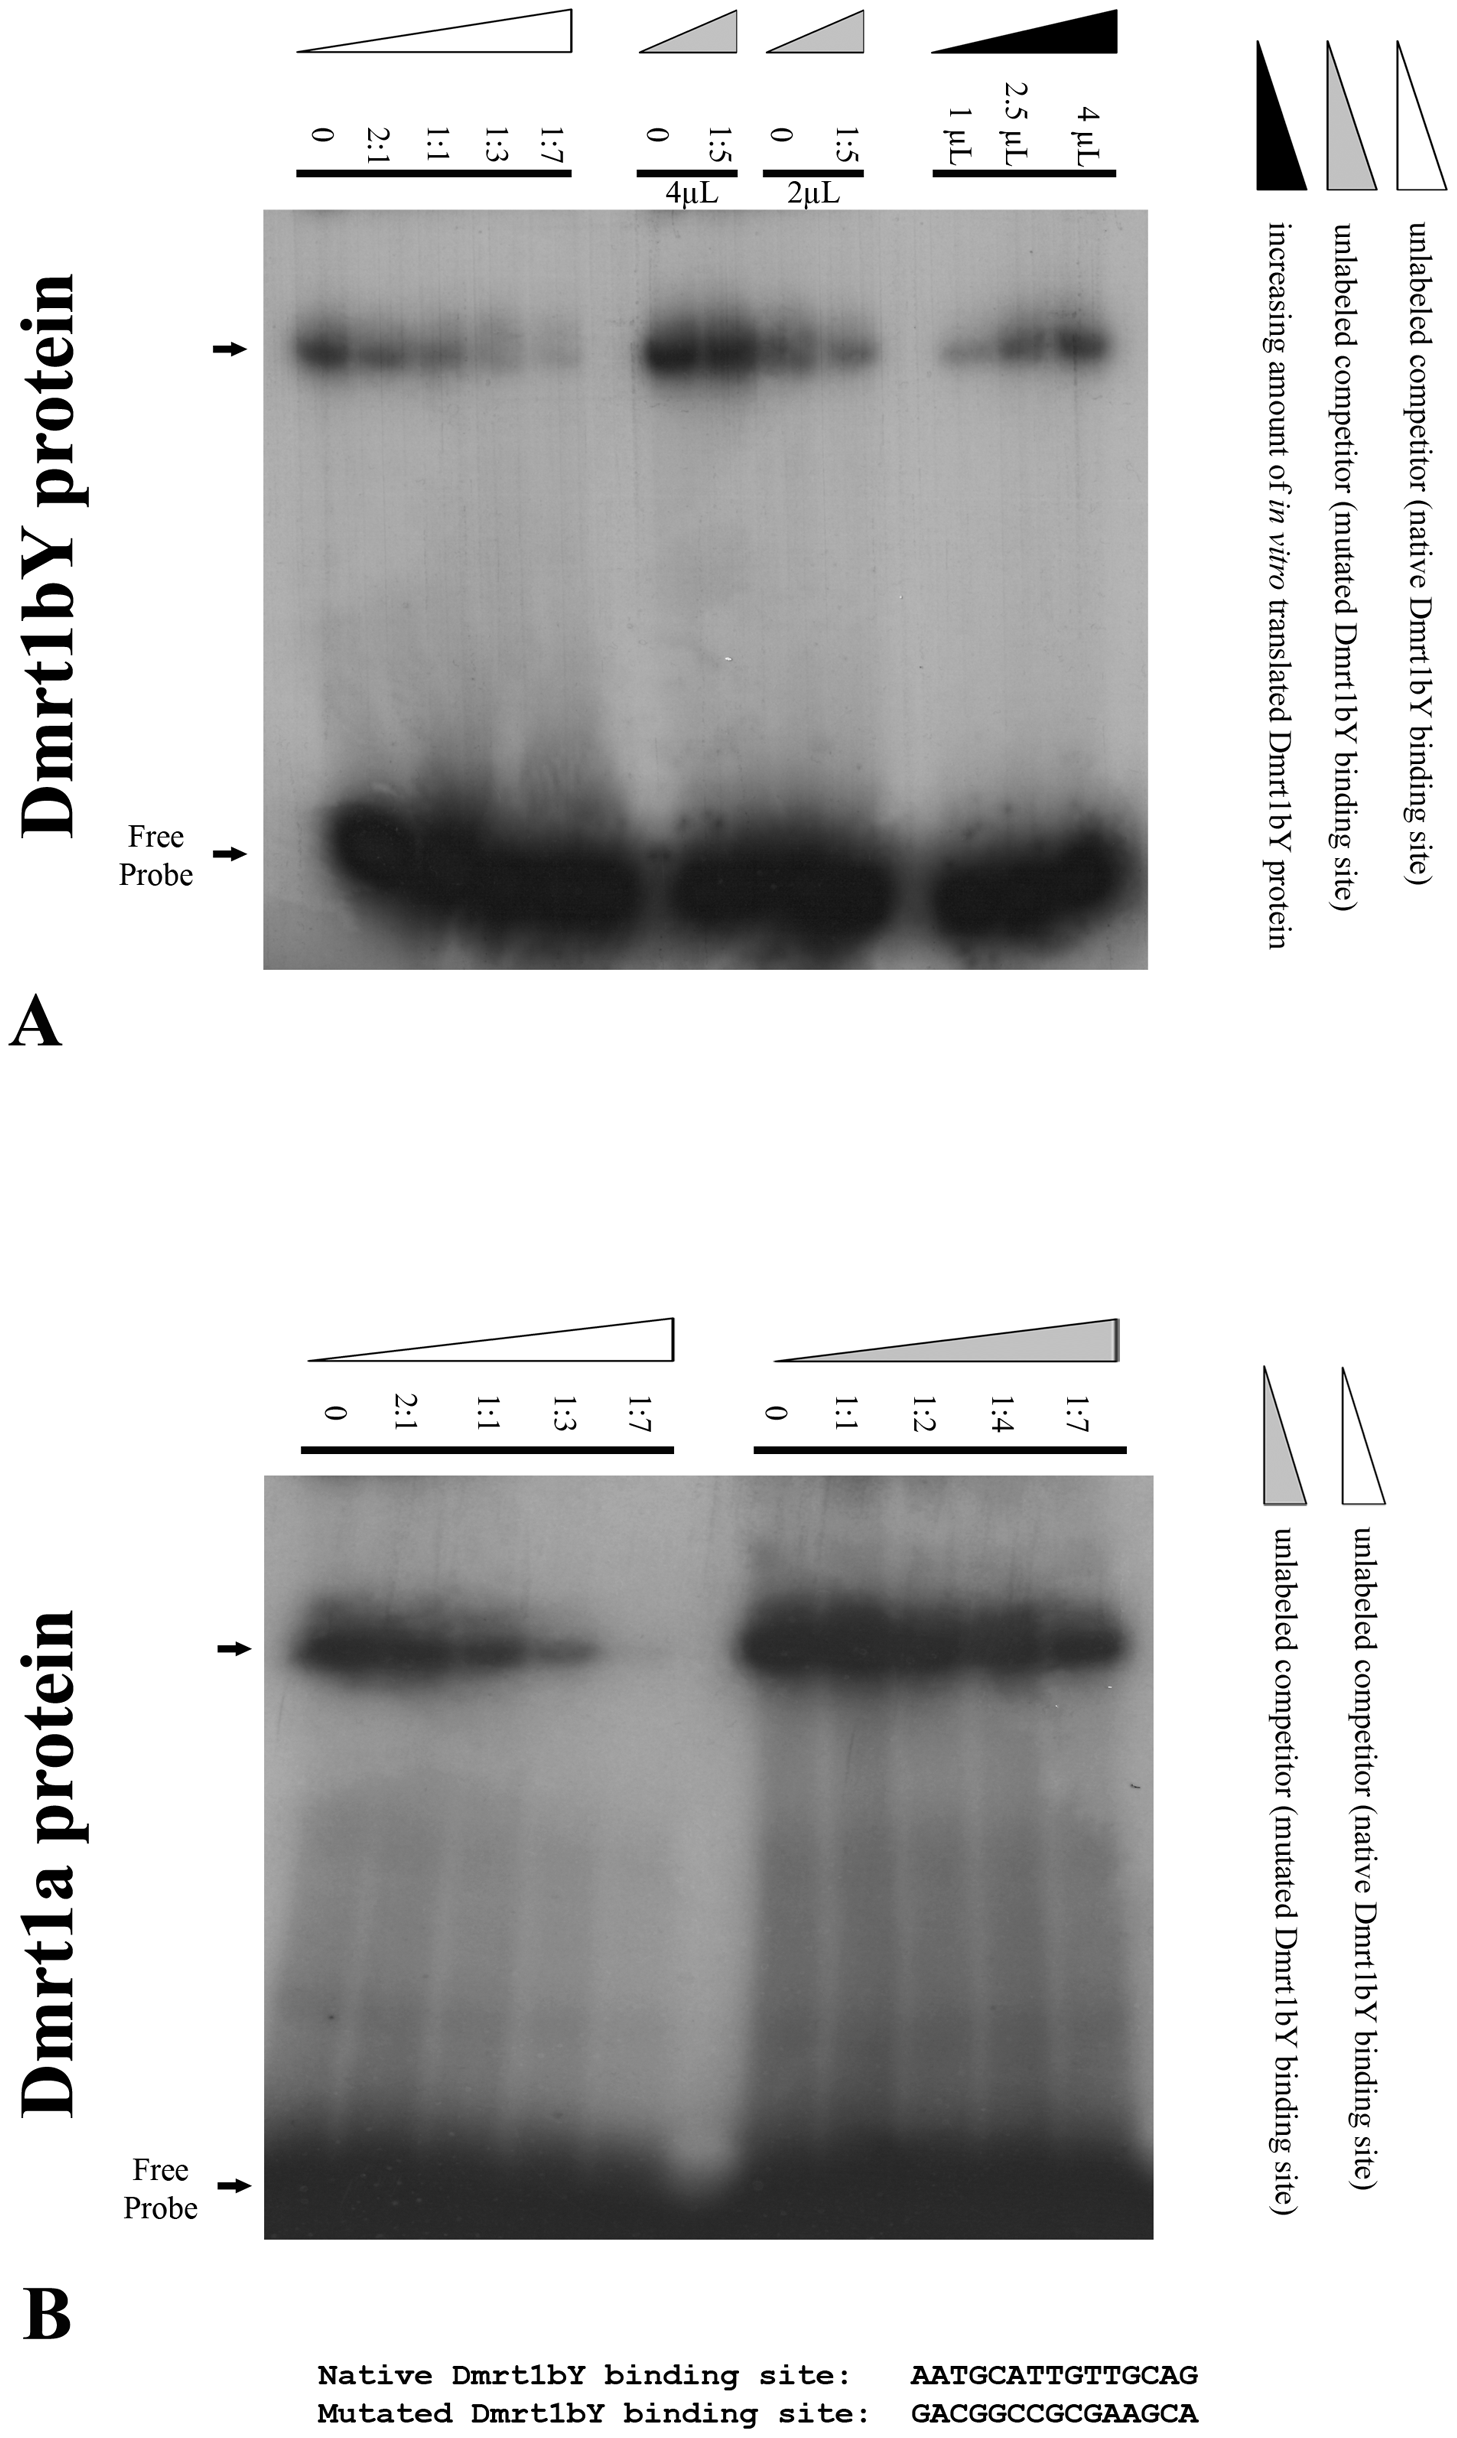 Electrophoretic Mobility Shift Analysis (EMSA) of <i>in vitro</i> translated Dmrt1bY protein interaction with the Dmrt1 binding target derived from its own promoter.